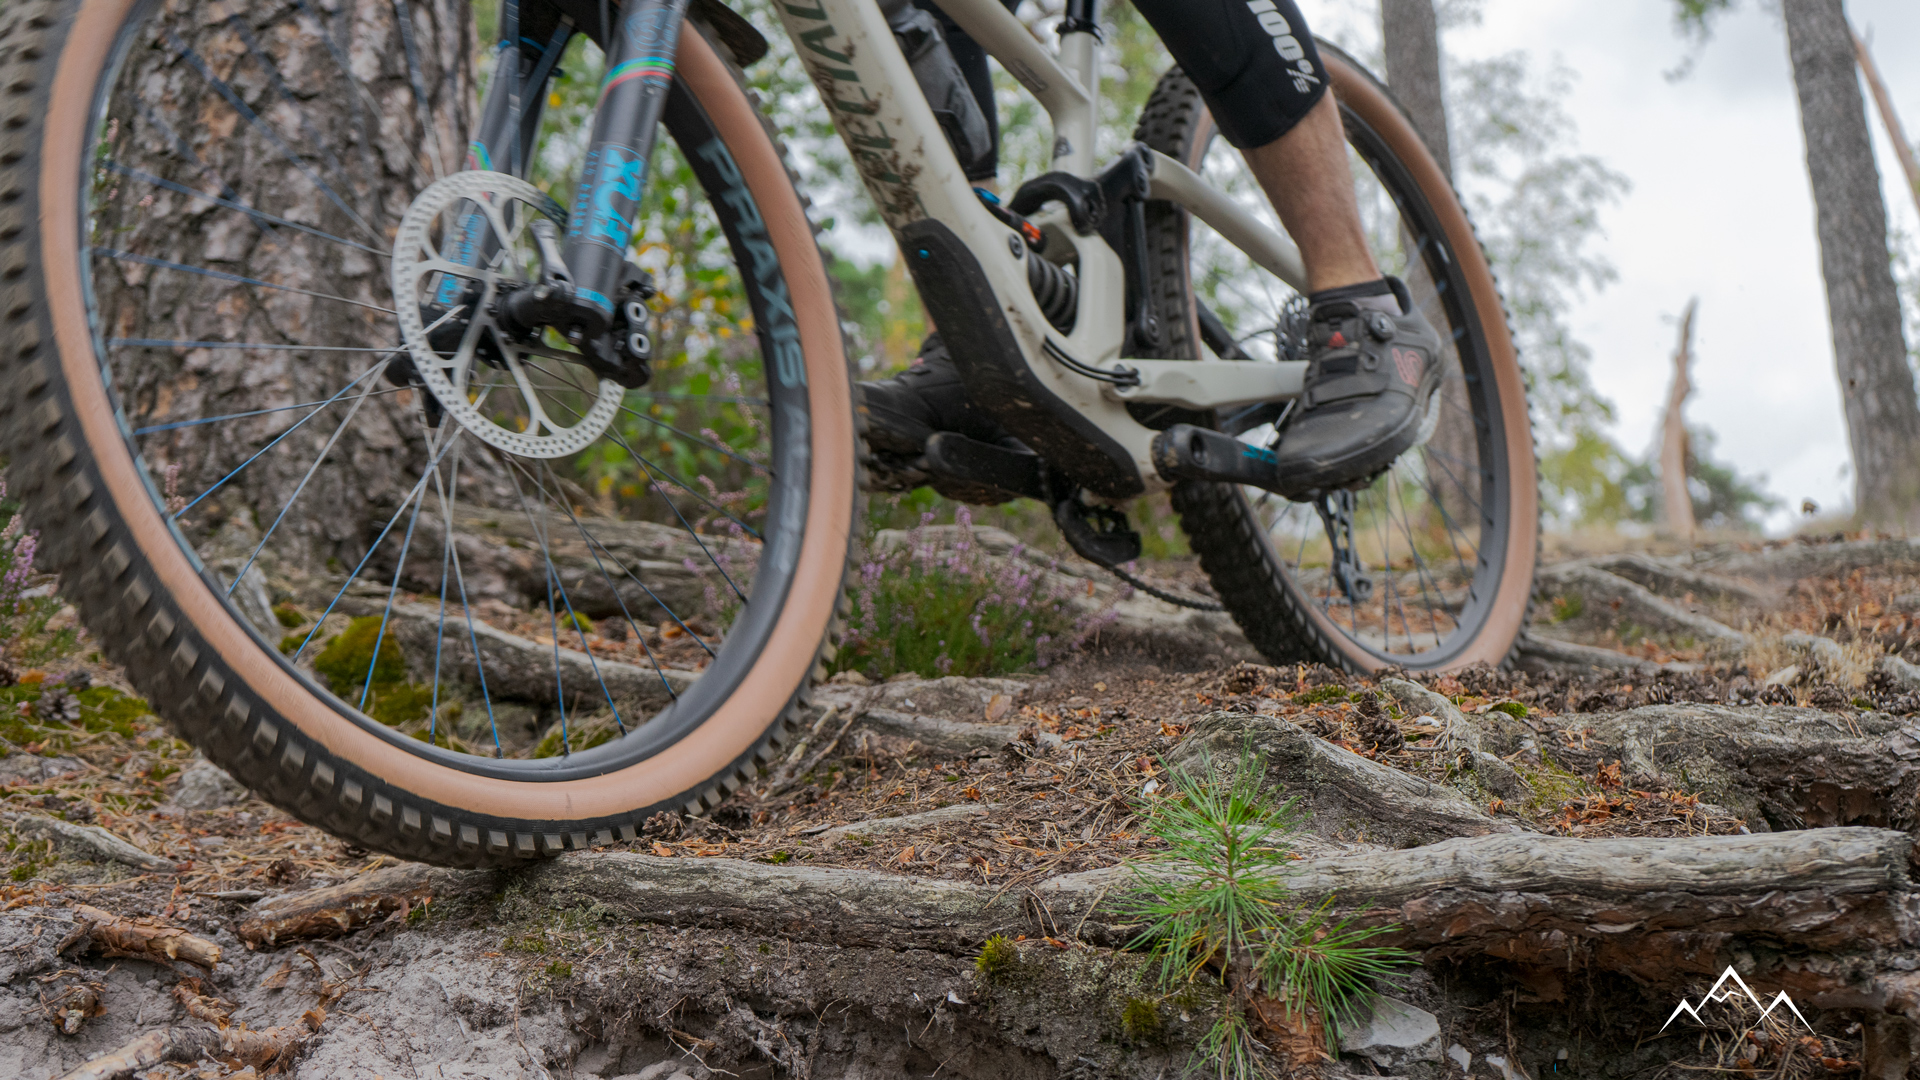 Specialized Soil Searching tyres